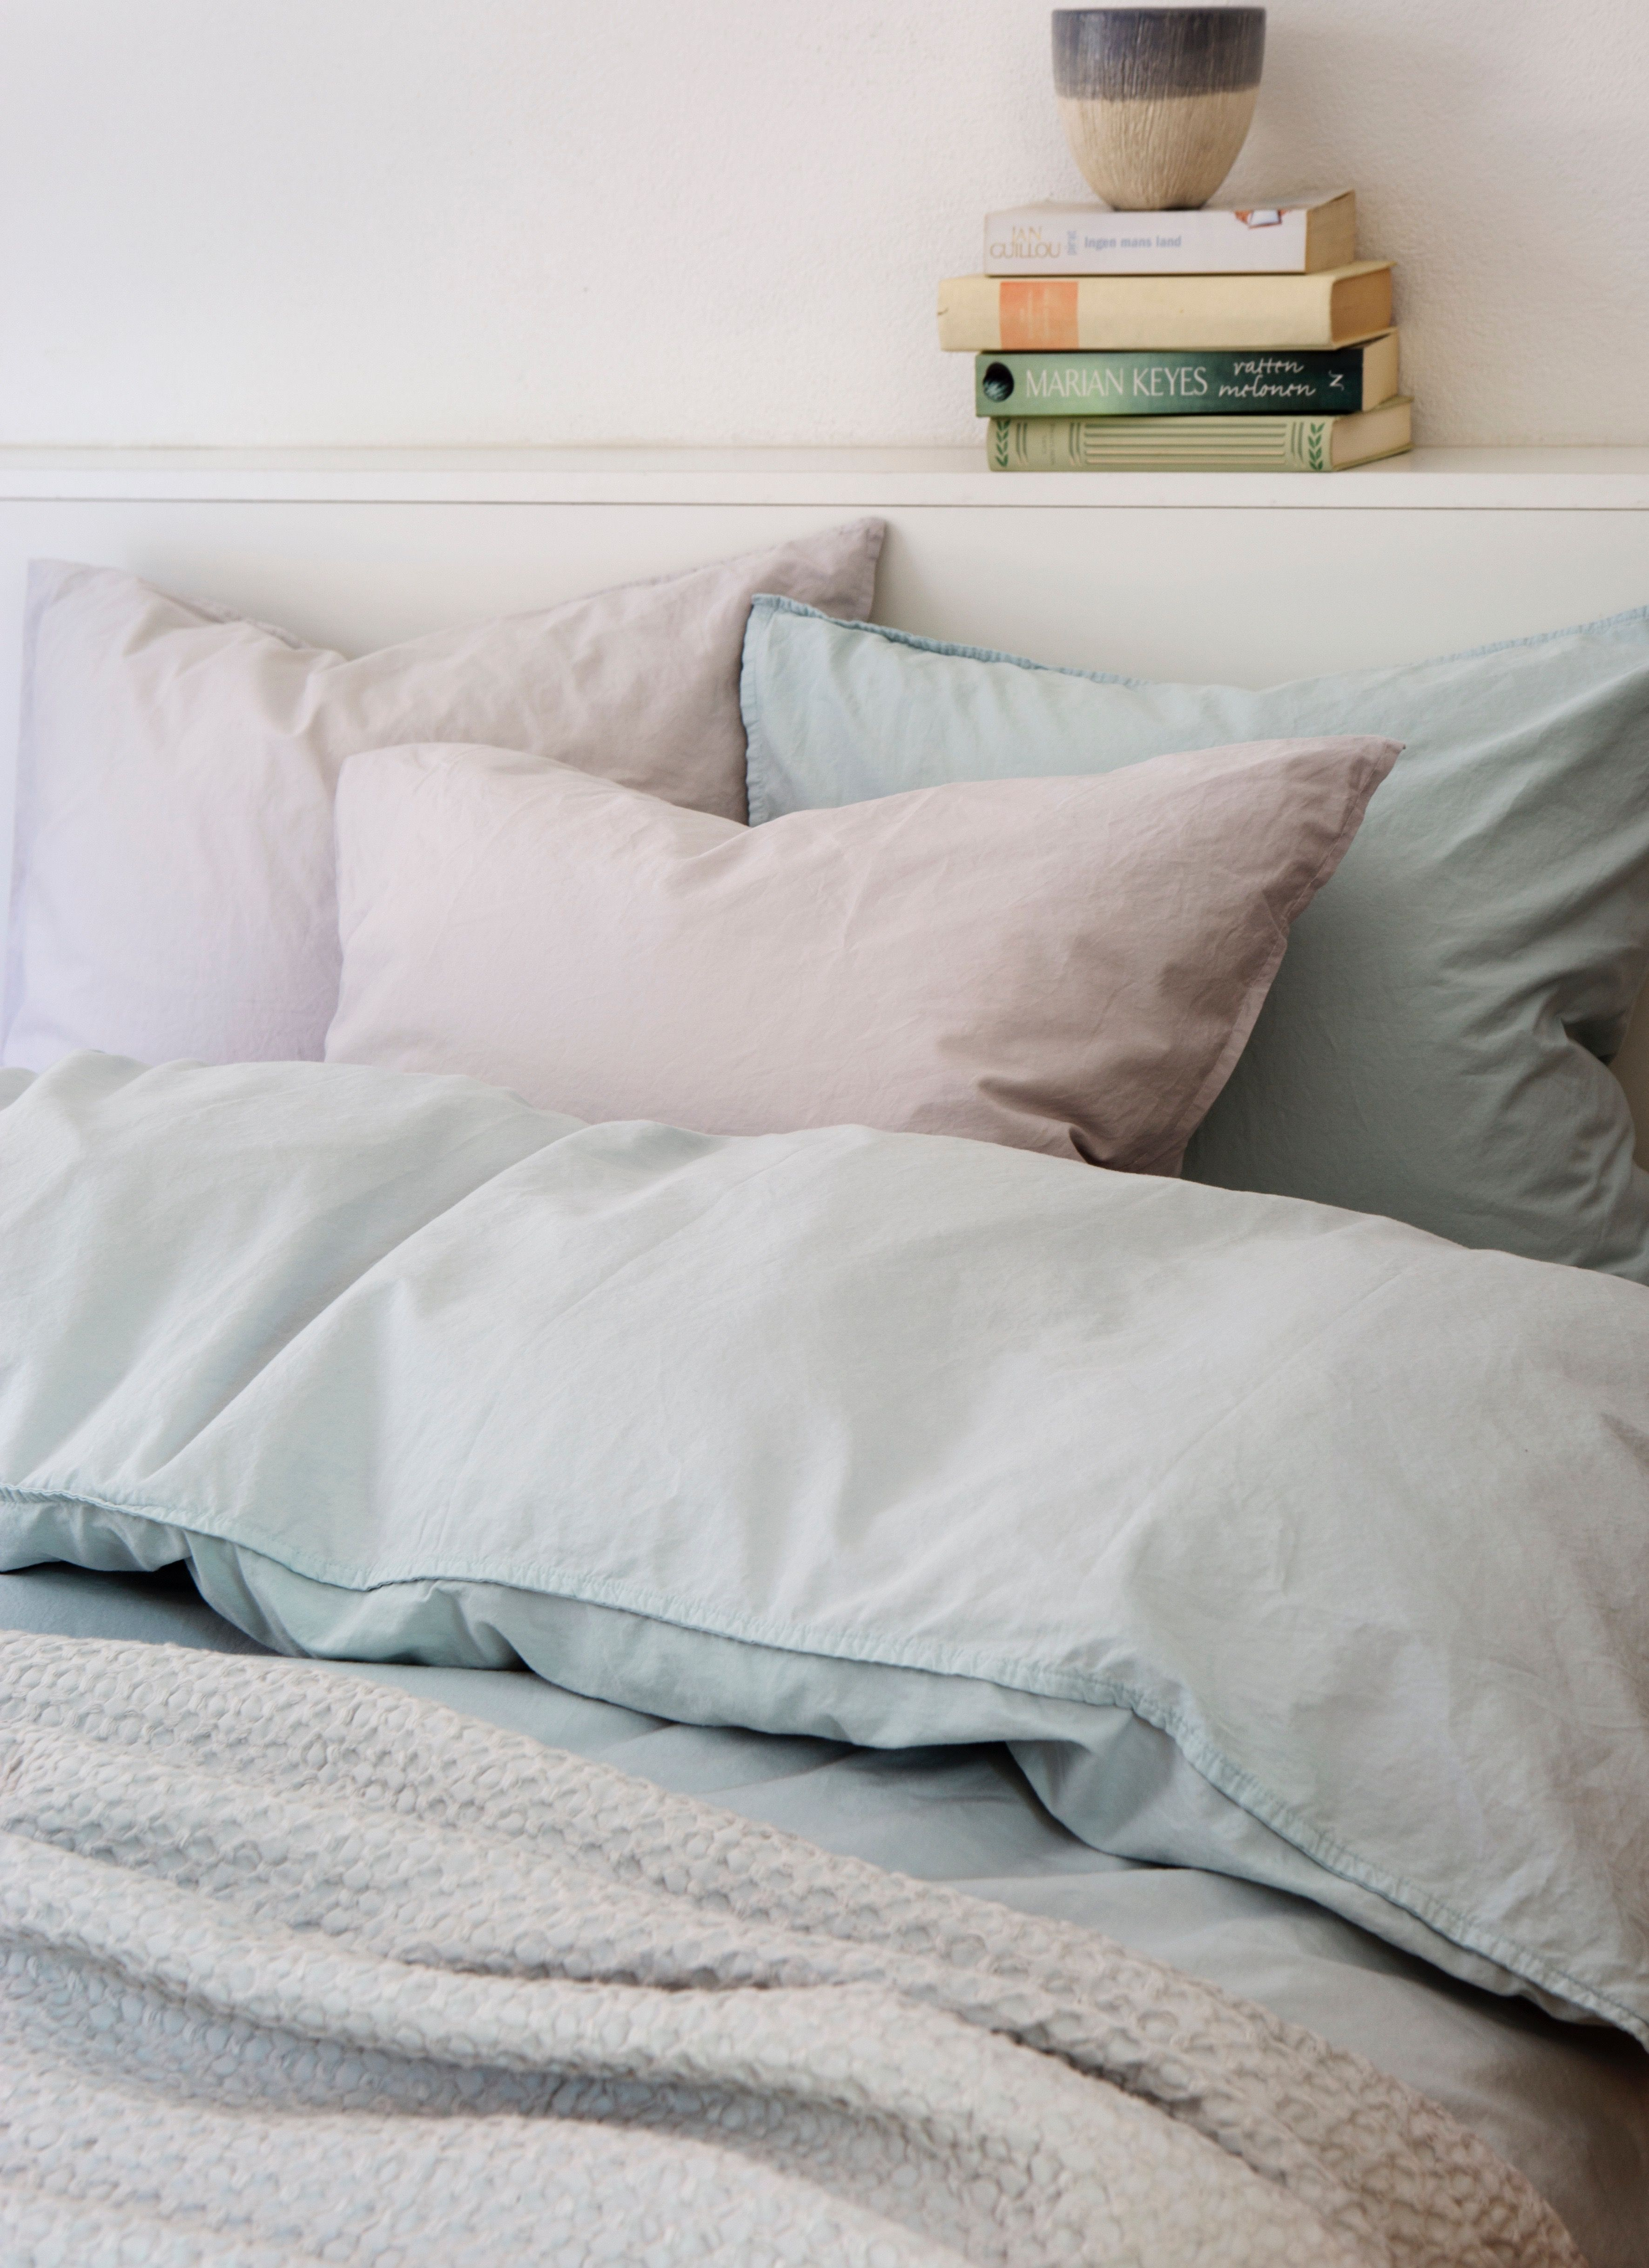 himla hope our bed linen in organic cotton percale brings a